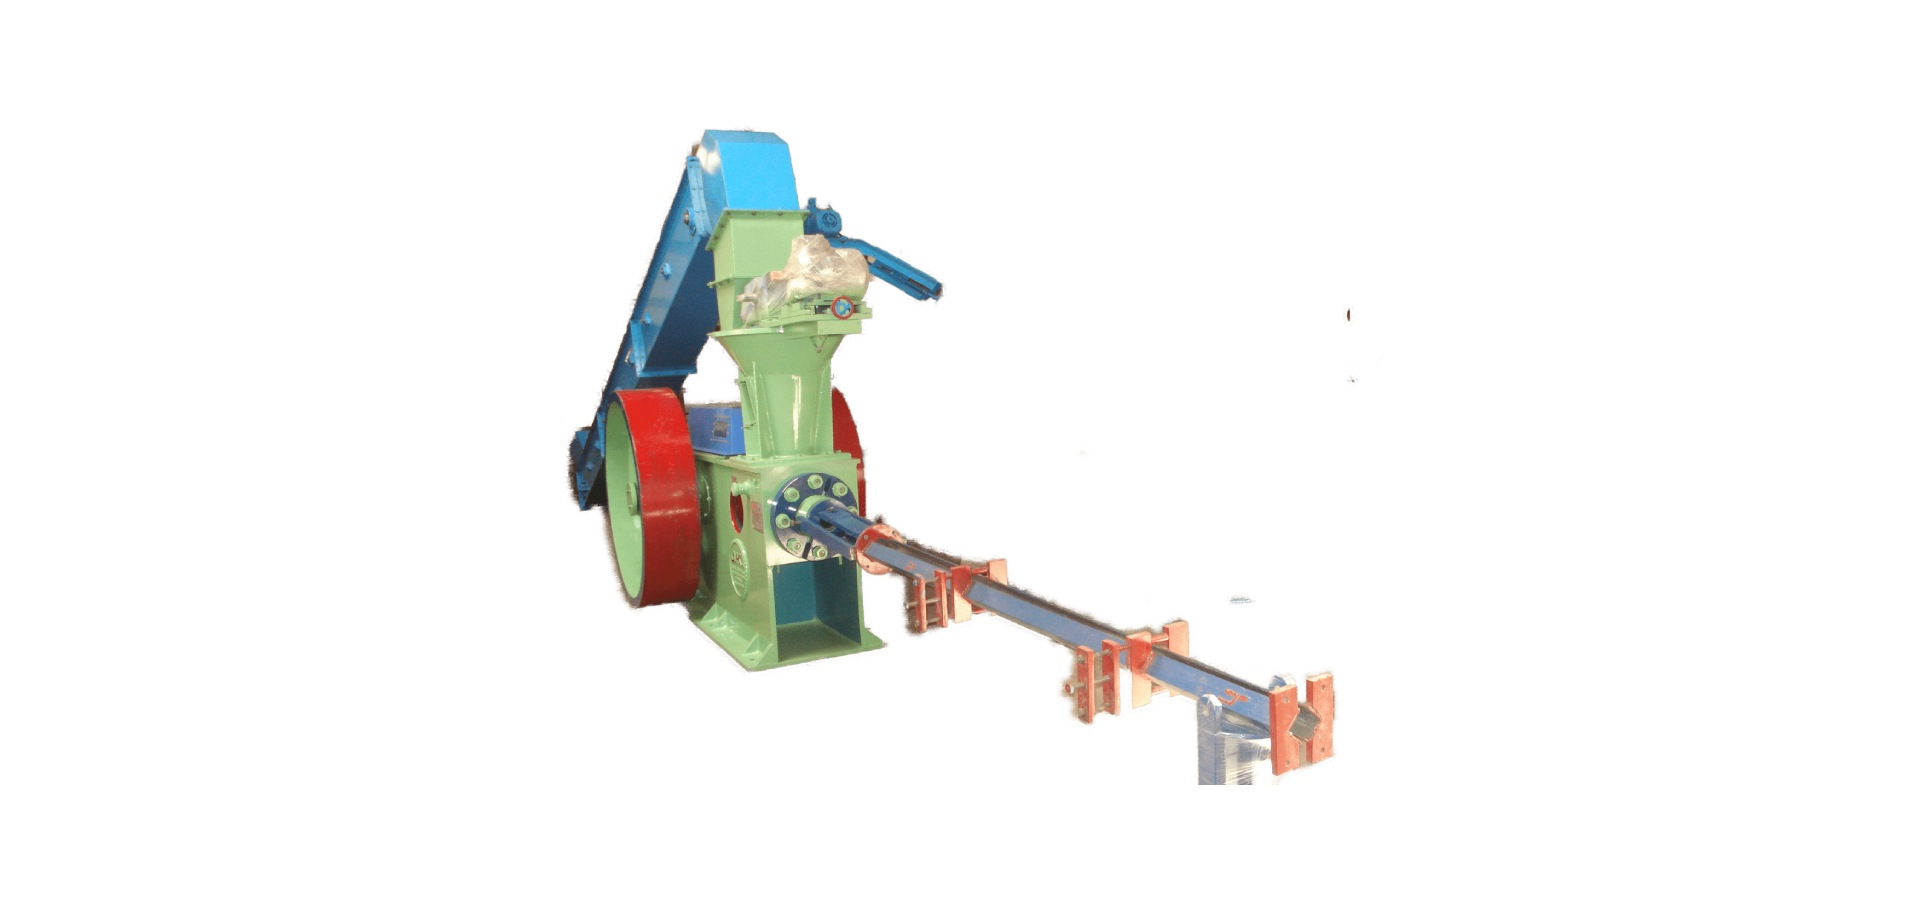 Solid Waste Briquetting Press